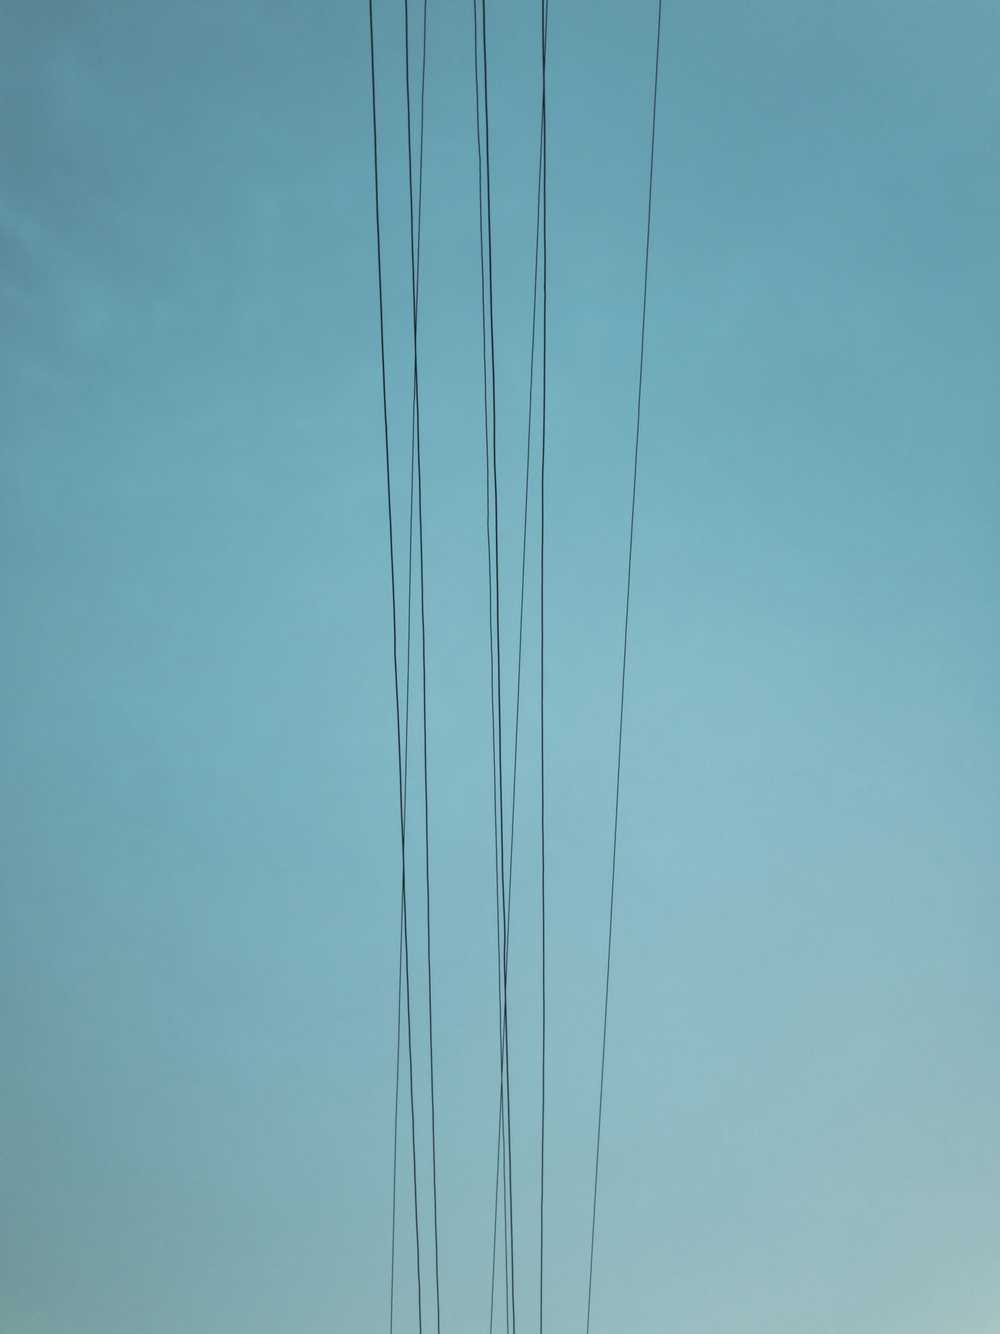 several cables under clear green sky